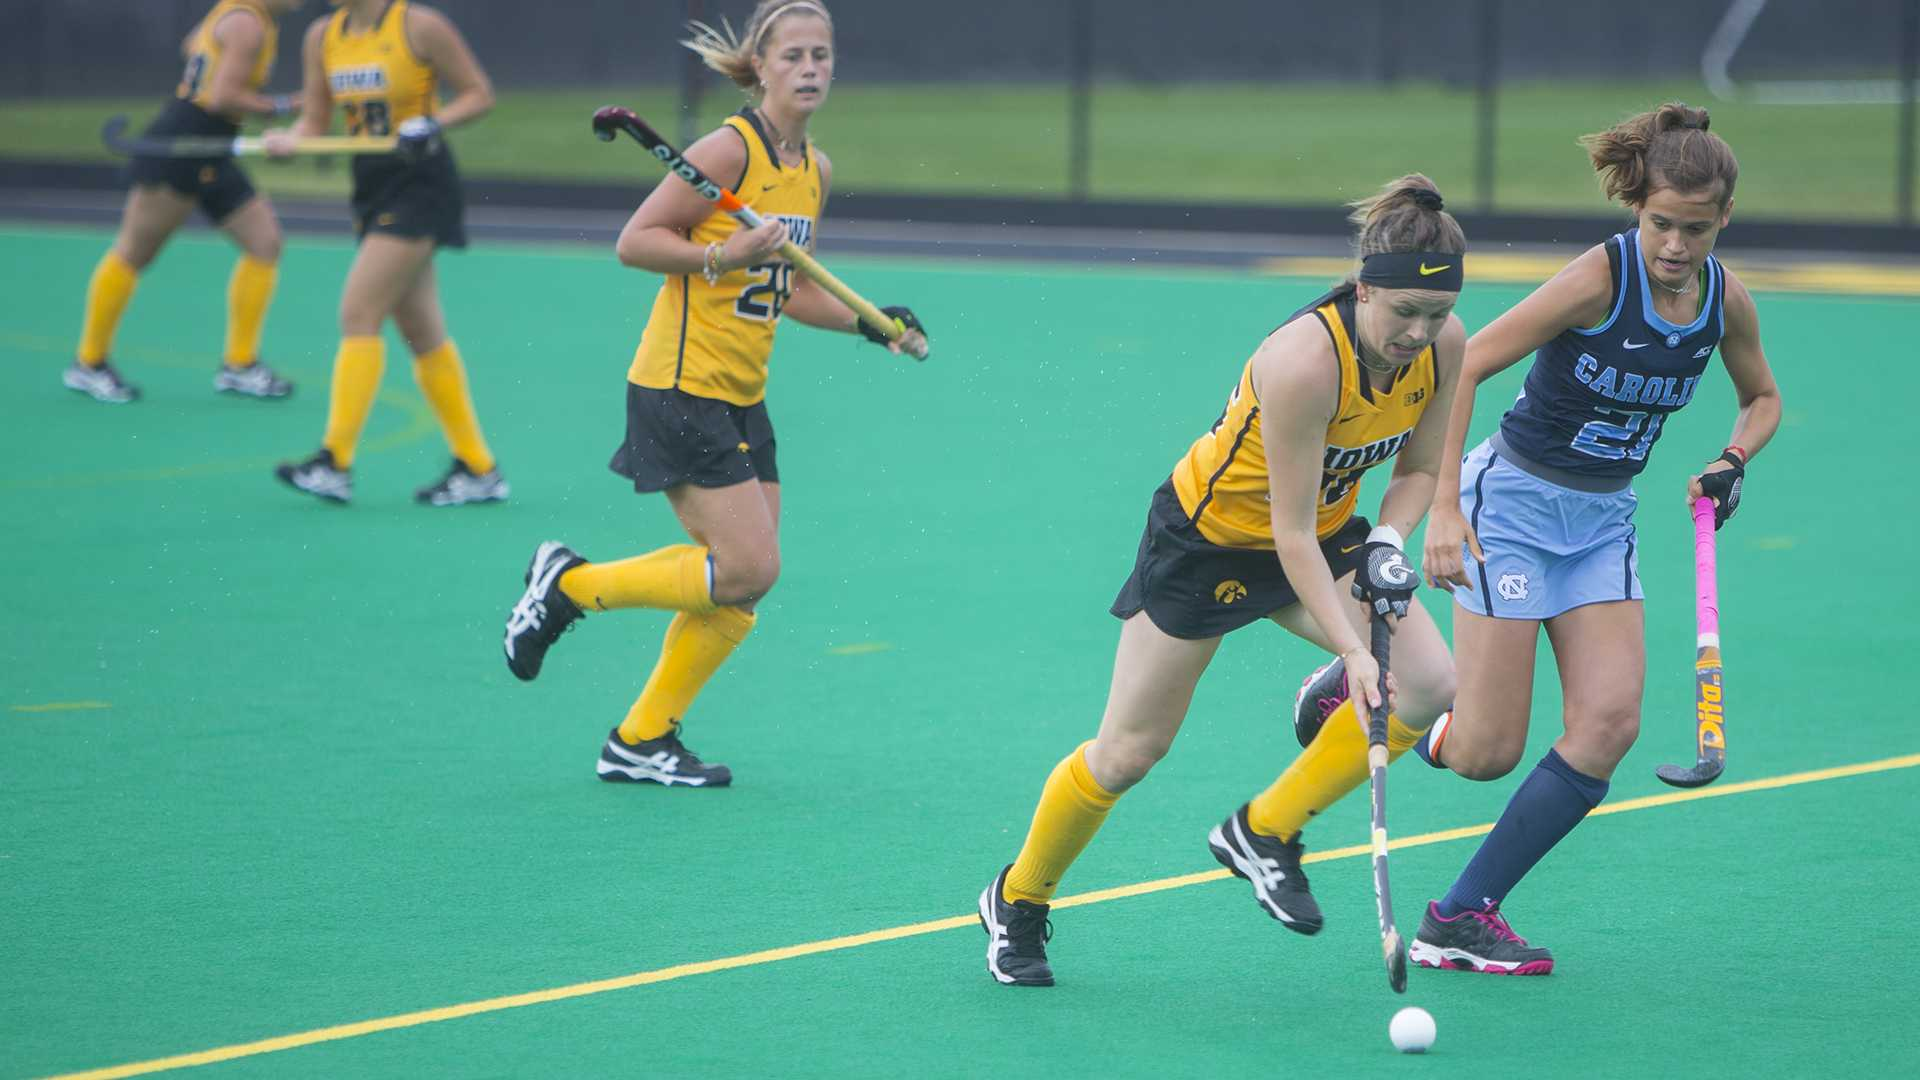 Iowa's Madeleine Murphy (26) runs from UNC's Eva Smolenaars (21) during a field hockey game during the Big Ten/ACC Challenge at Grant Field in Iowa City on Sunday, Aug. 27, 2017. The Hawkeyes fell to the Tarheels, 3-0. (Lily Smith/The Daily Iowan)